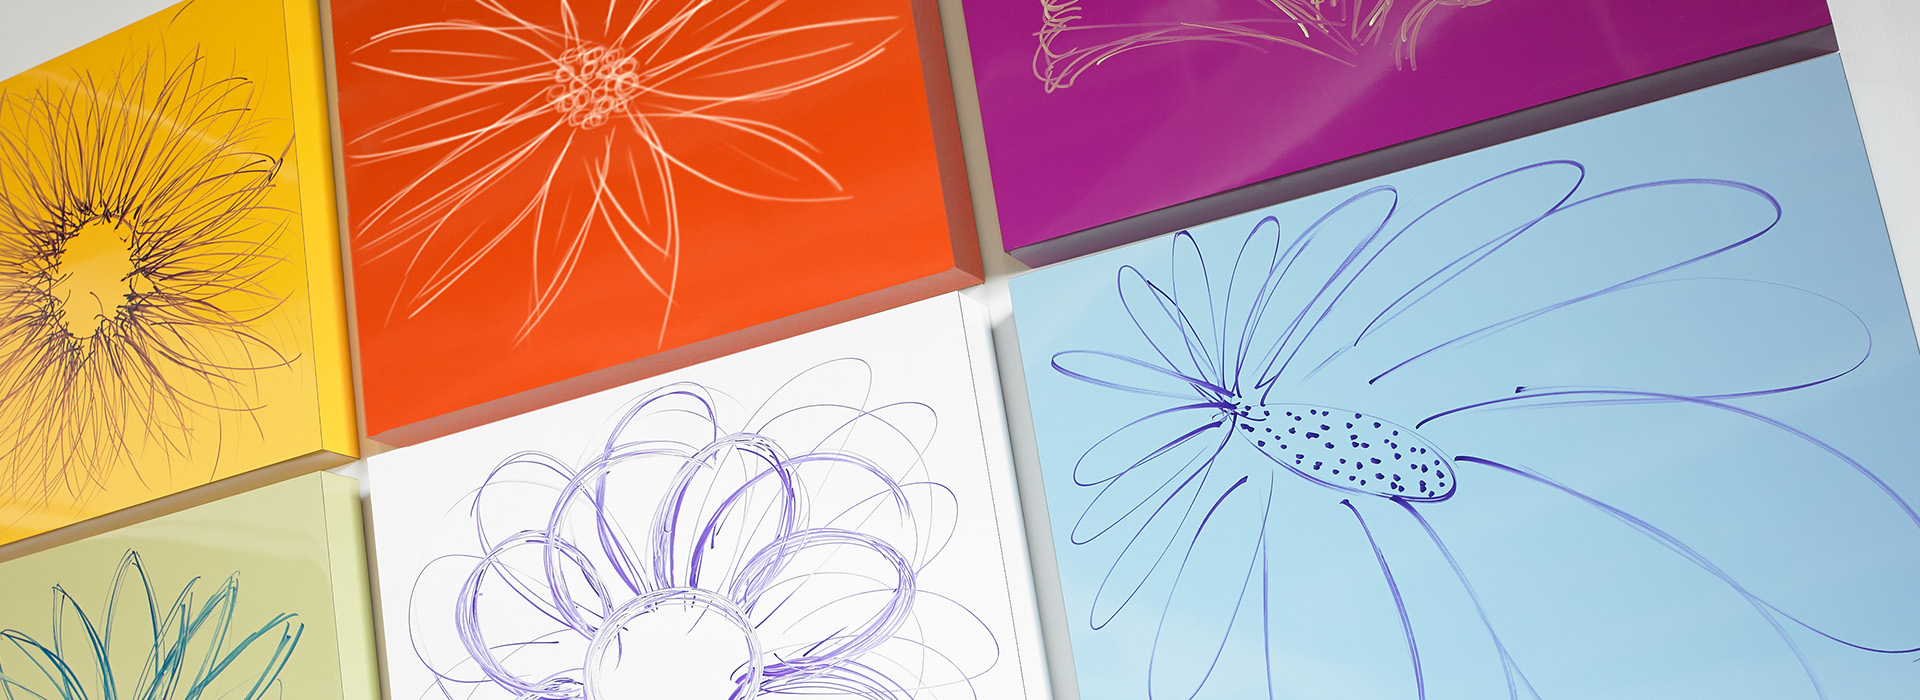 Flower artwork 851 Spectrum Blue 3209 Sol 6907 Amarena 8821 Just Blue Specialty Markerboard